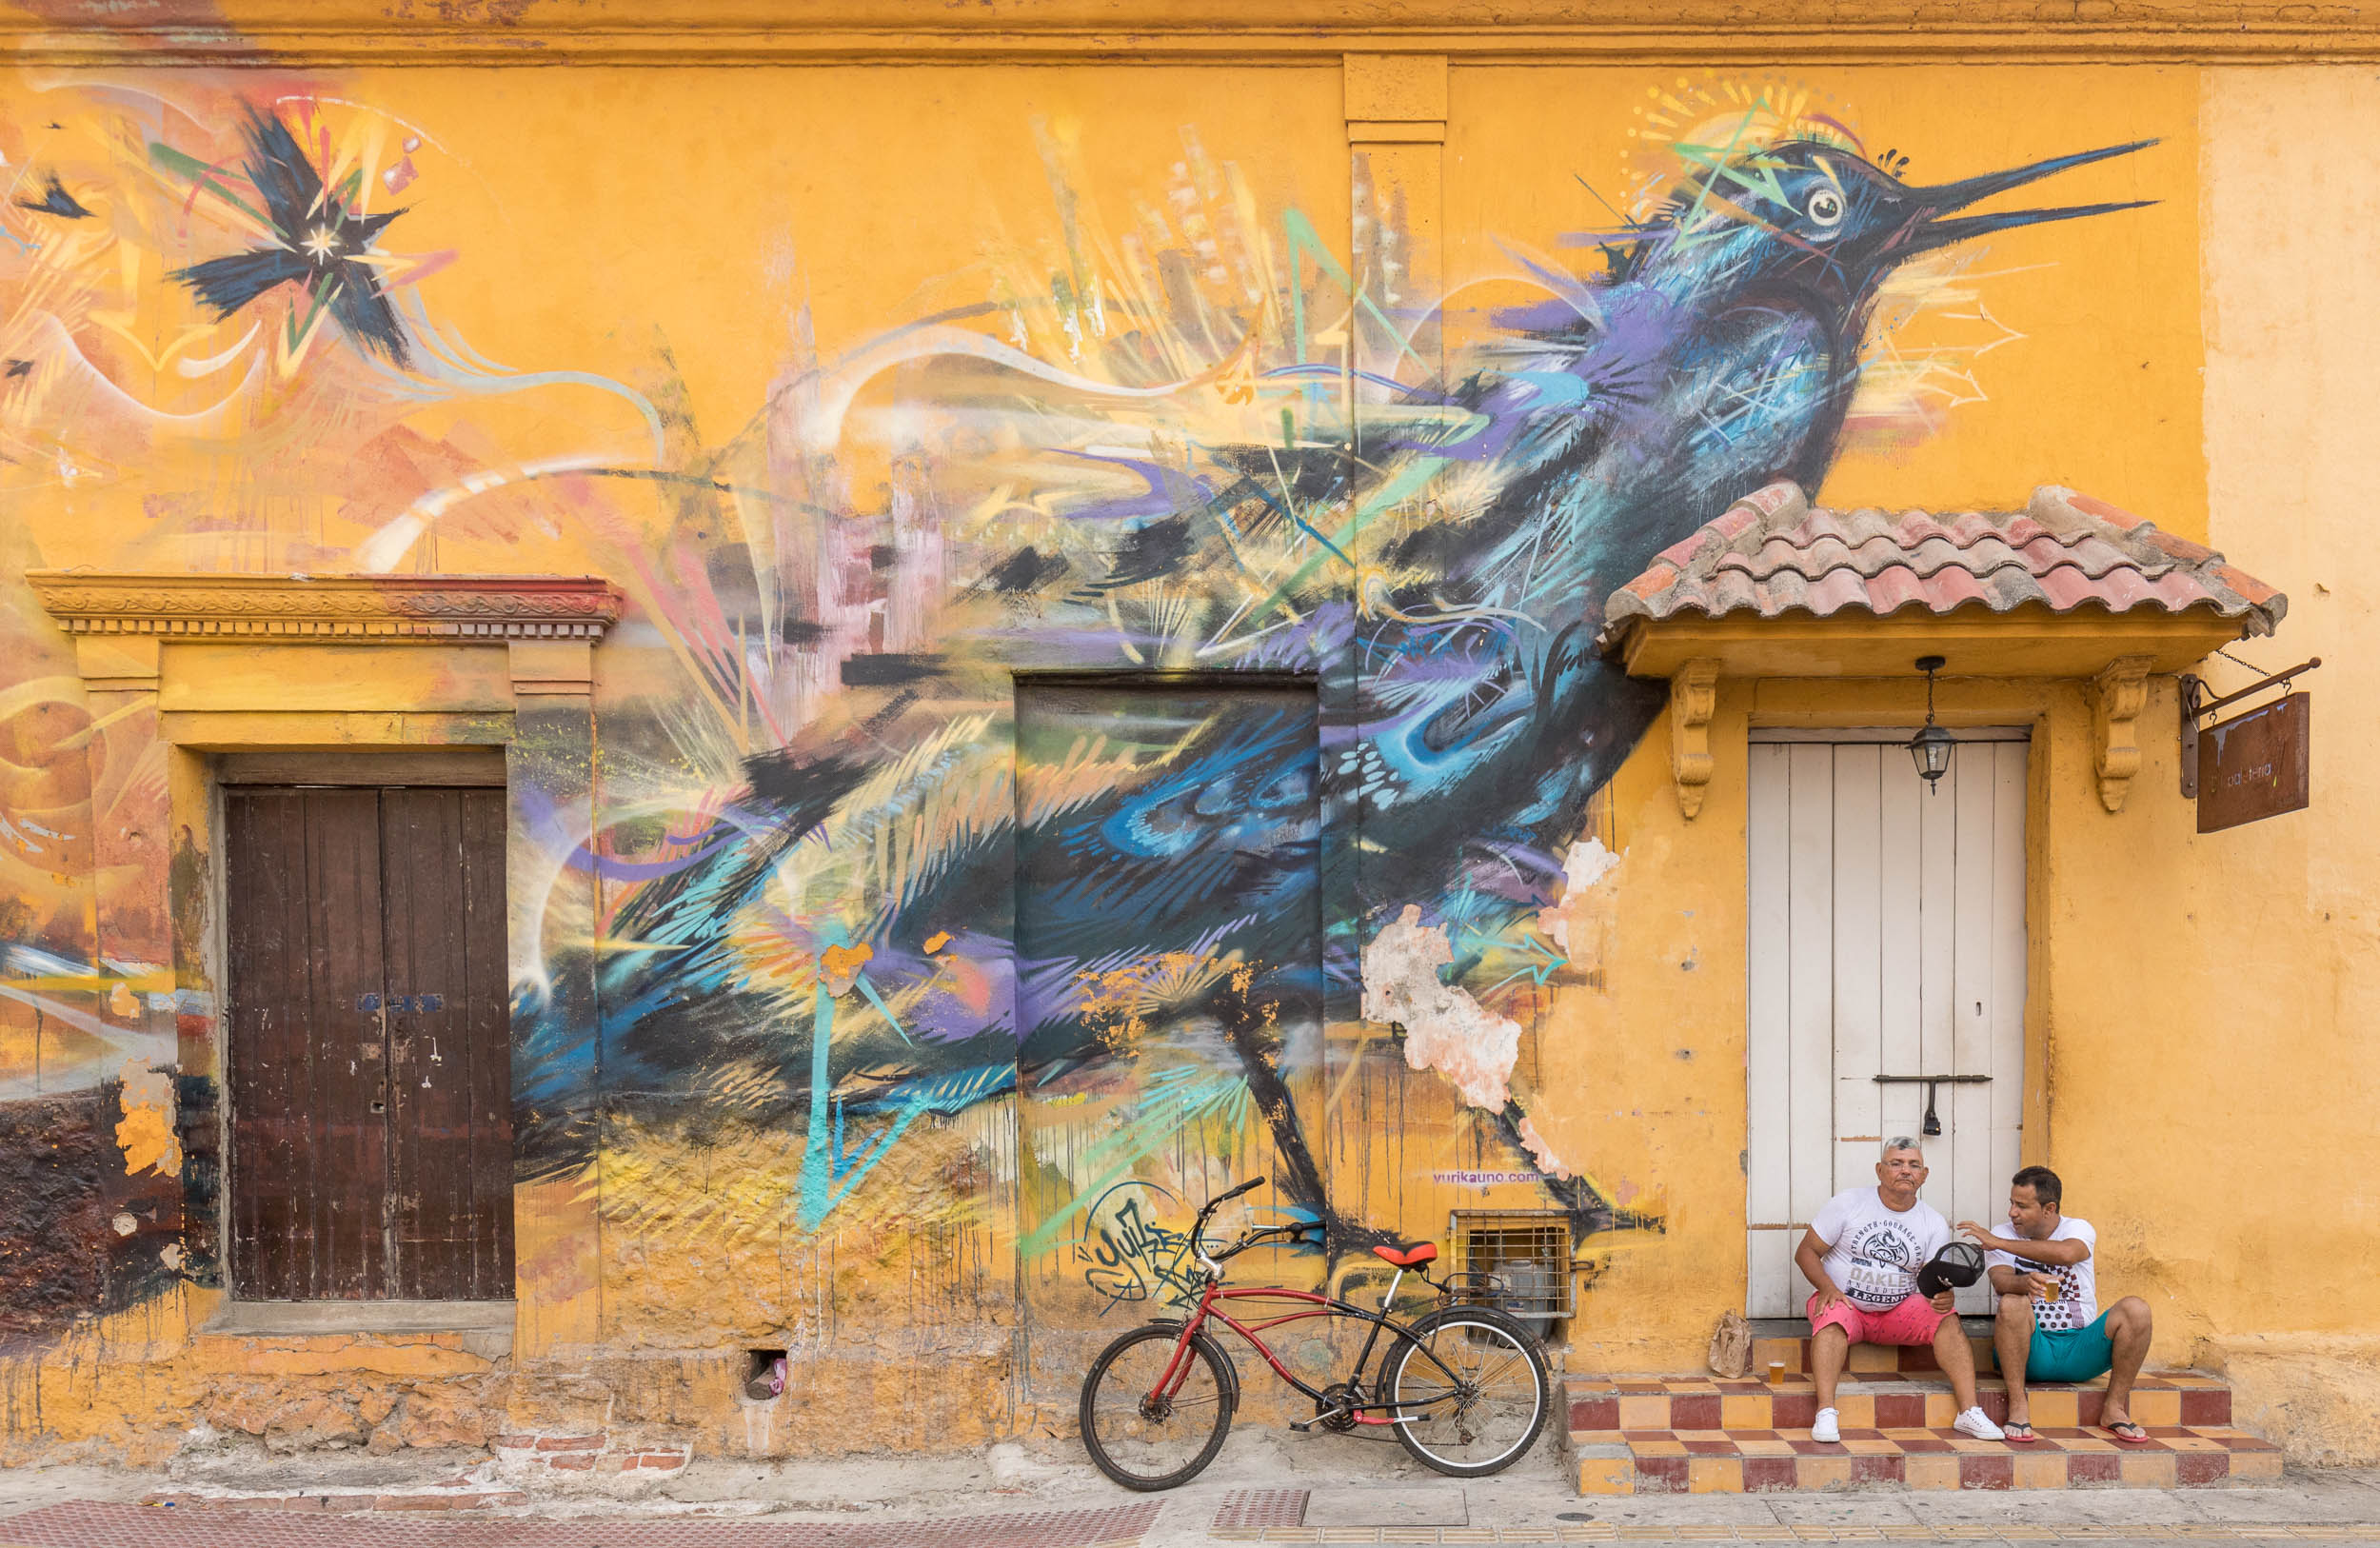 Two men sitting in front of a huge mural of a bird.